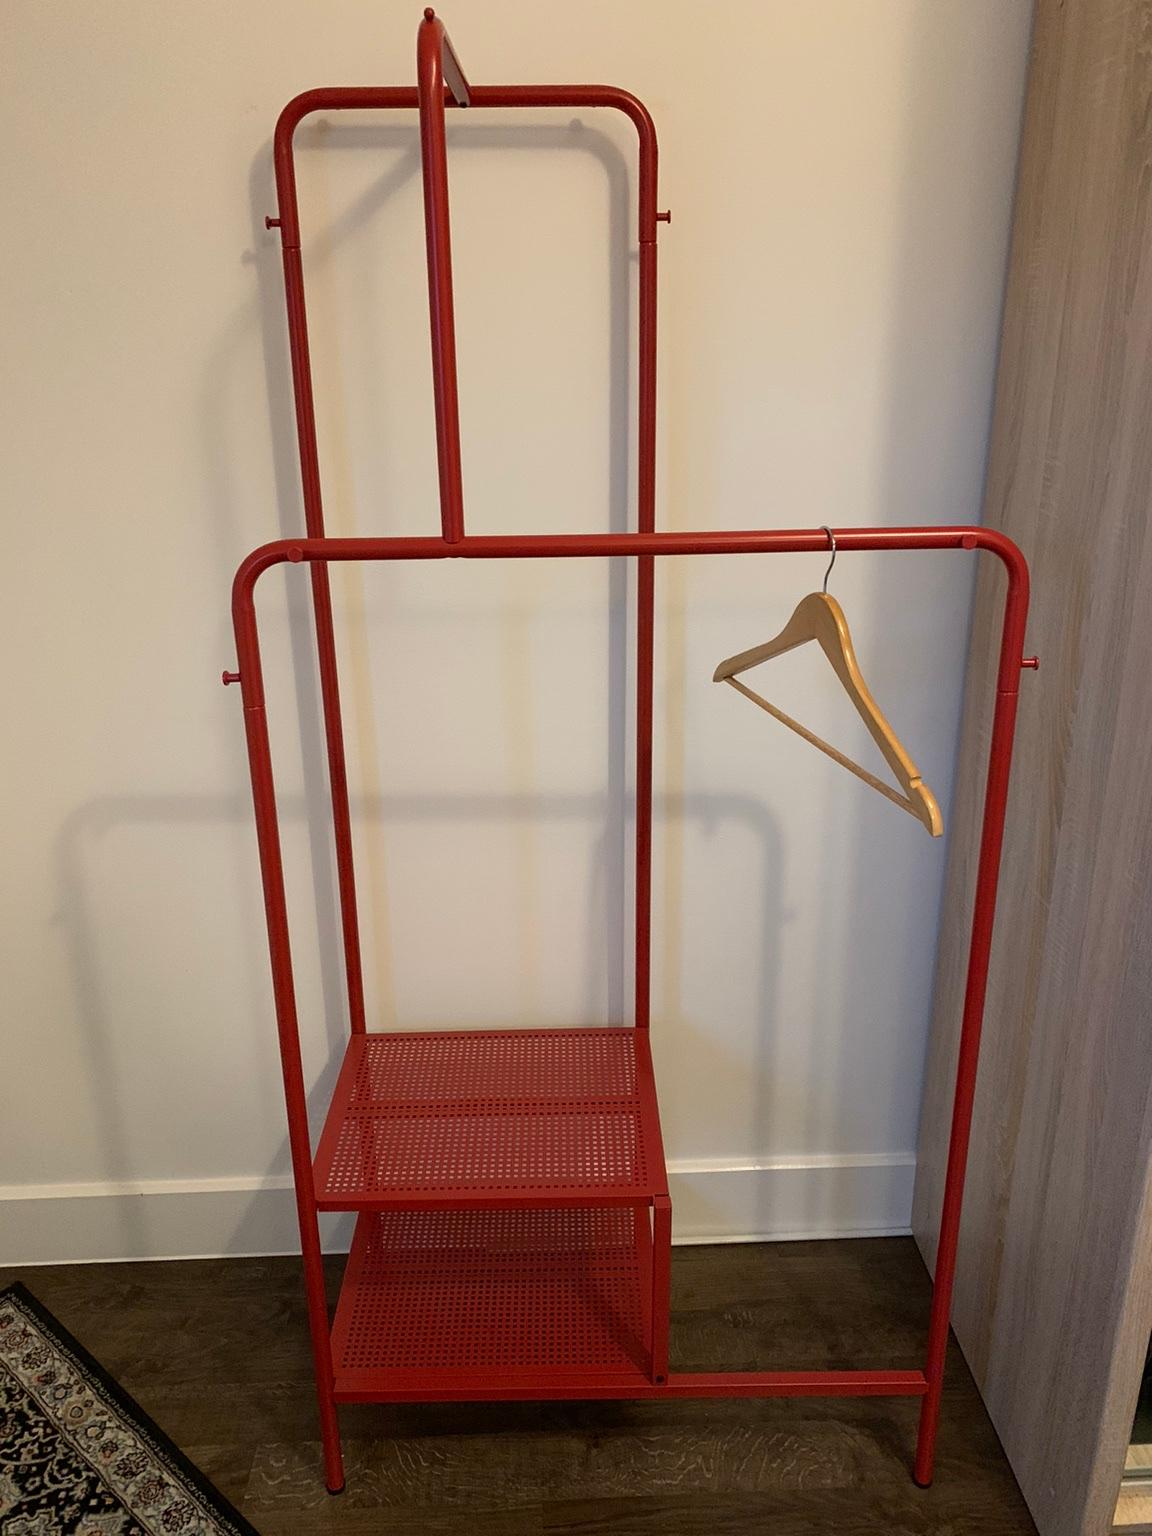 ikea nikkeby clothes rack red